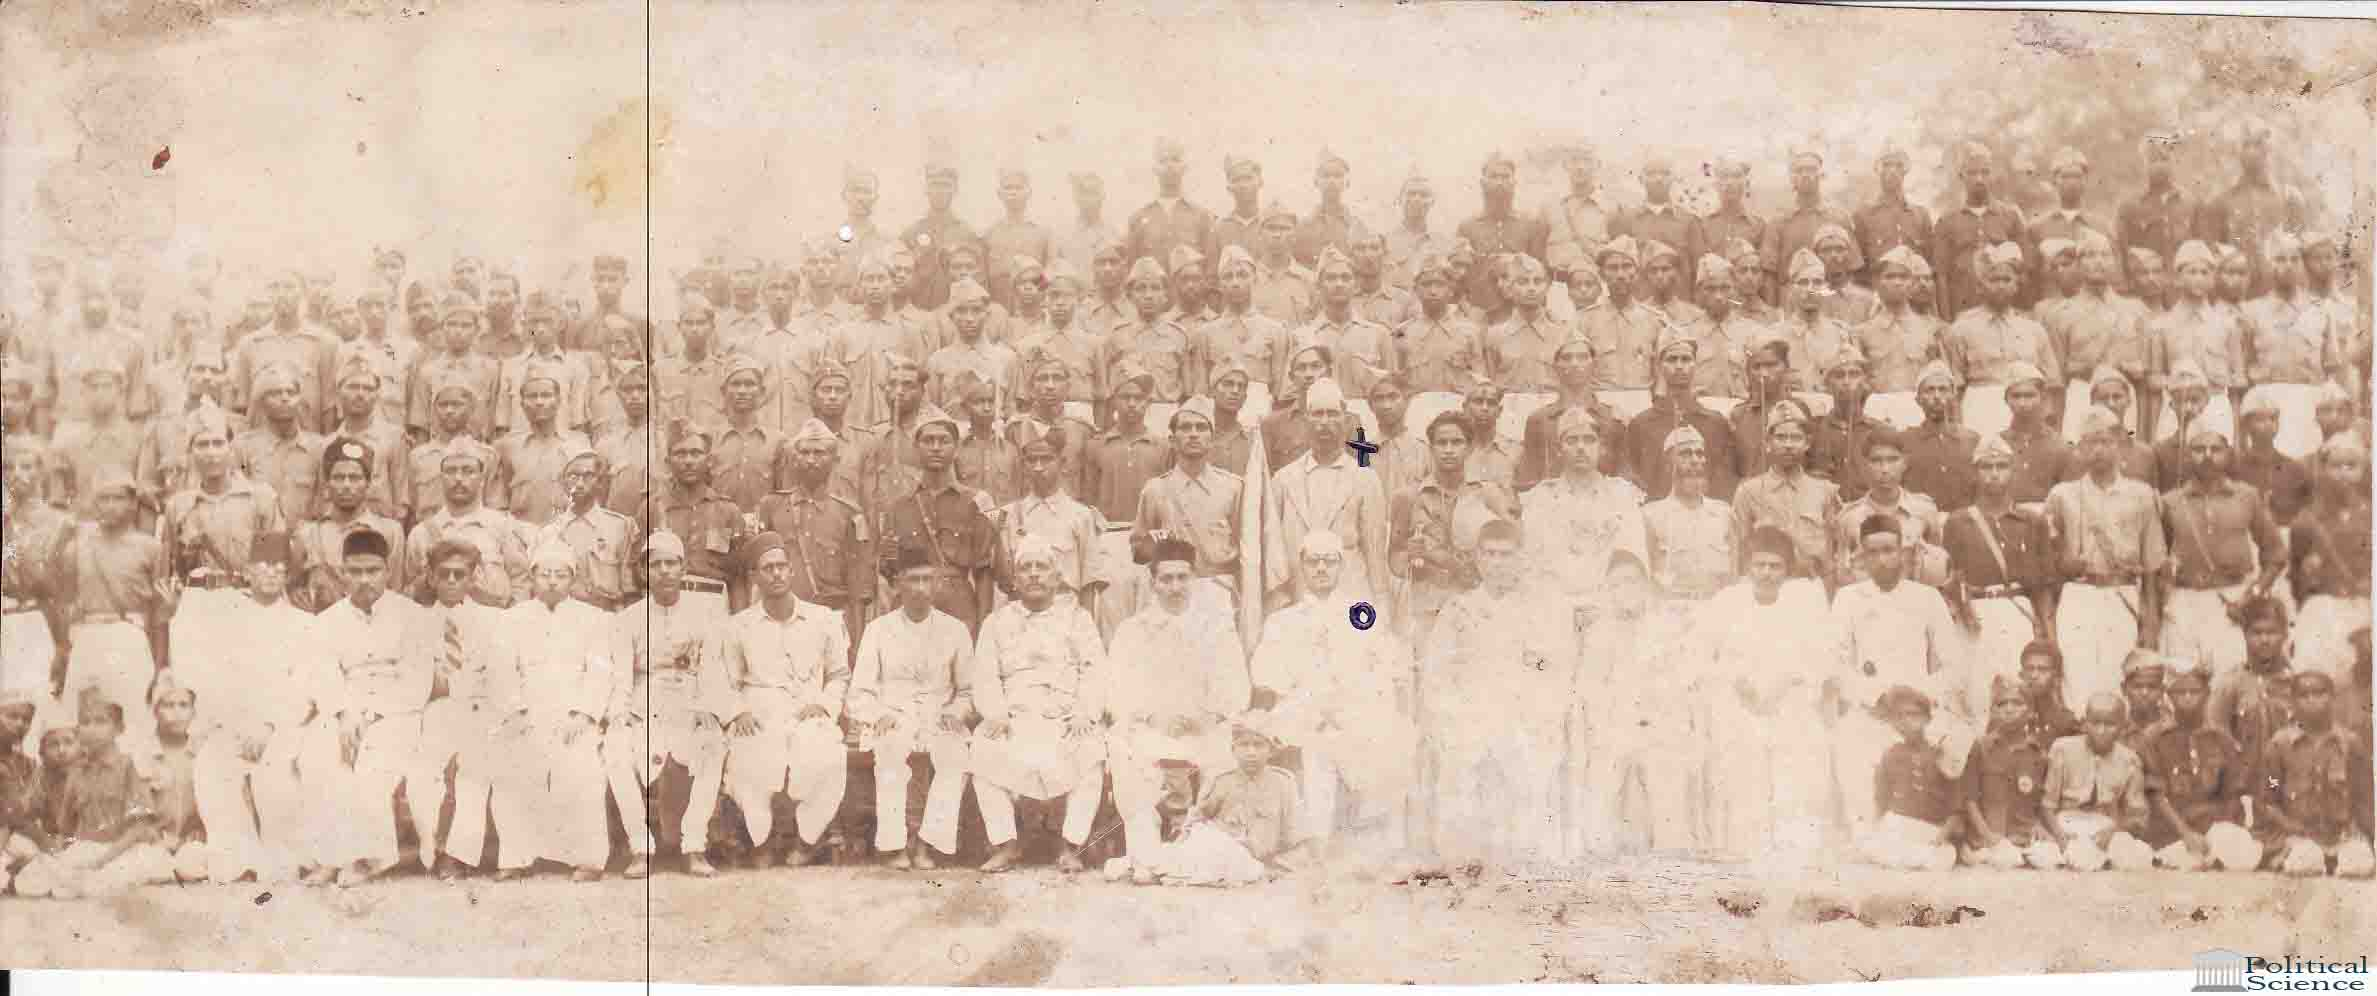 First Session of All India Jamhur Muslim League held in 1940 at Muzaffarpur Bihar